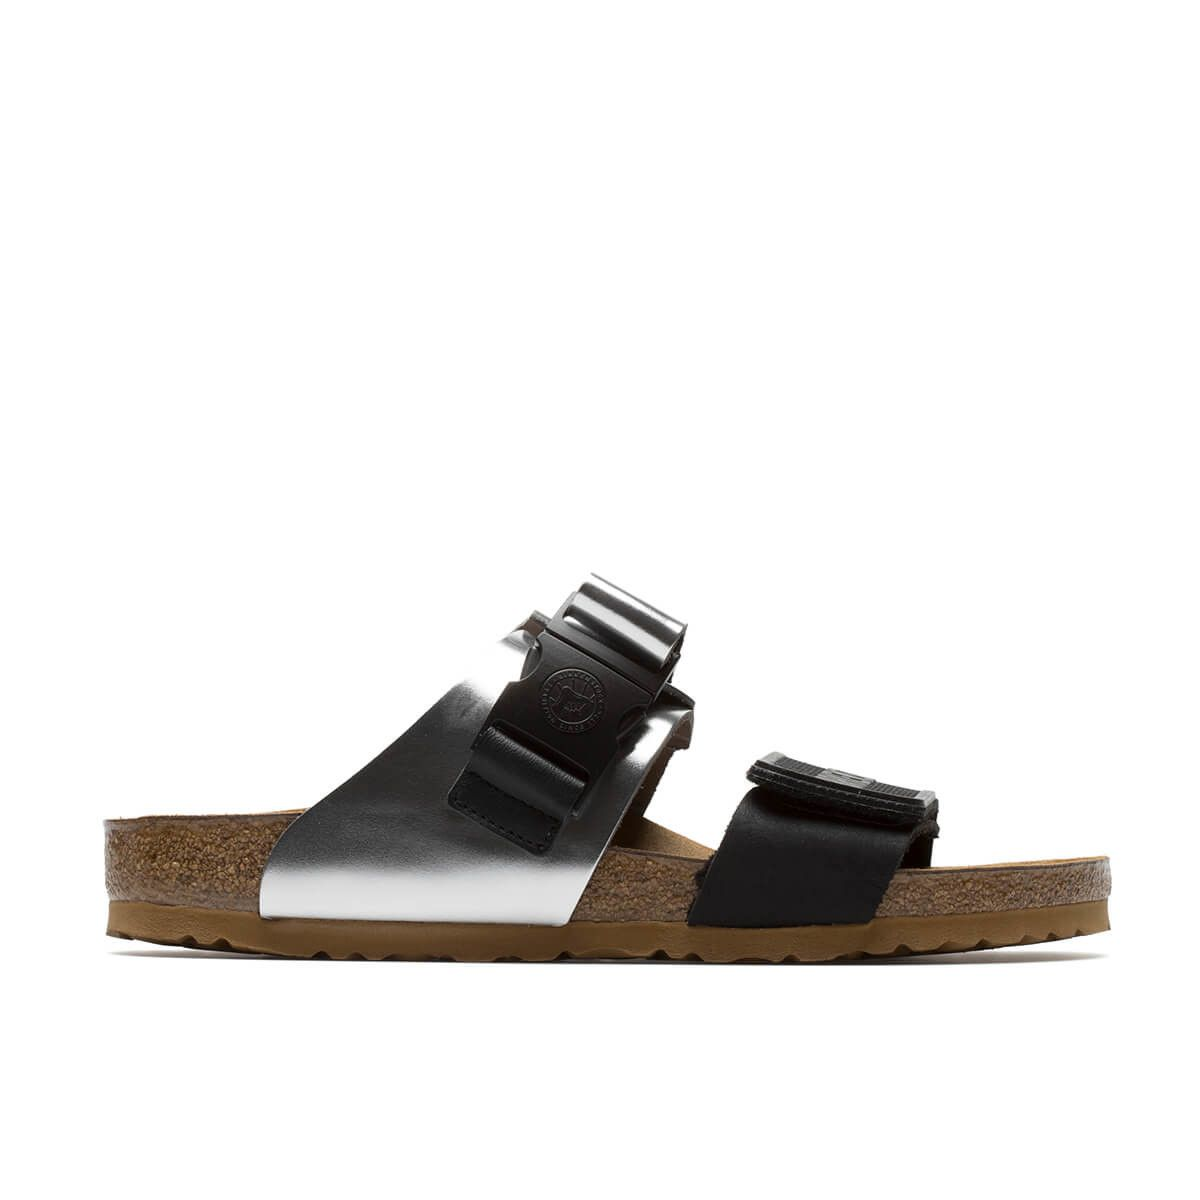 5c439780fefa56 Rotterdam Combo sandals from the Rick Owens x Birkenstock collection in  black and silver